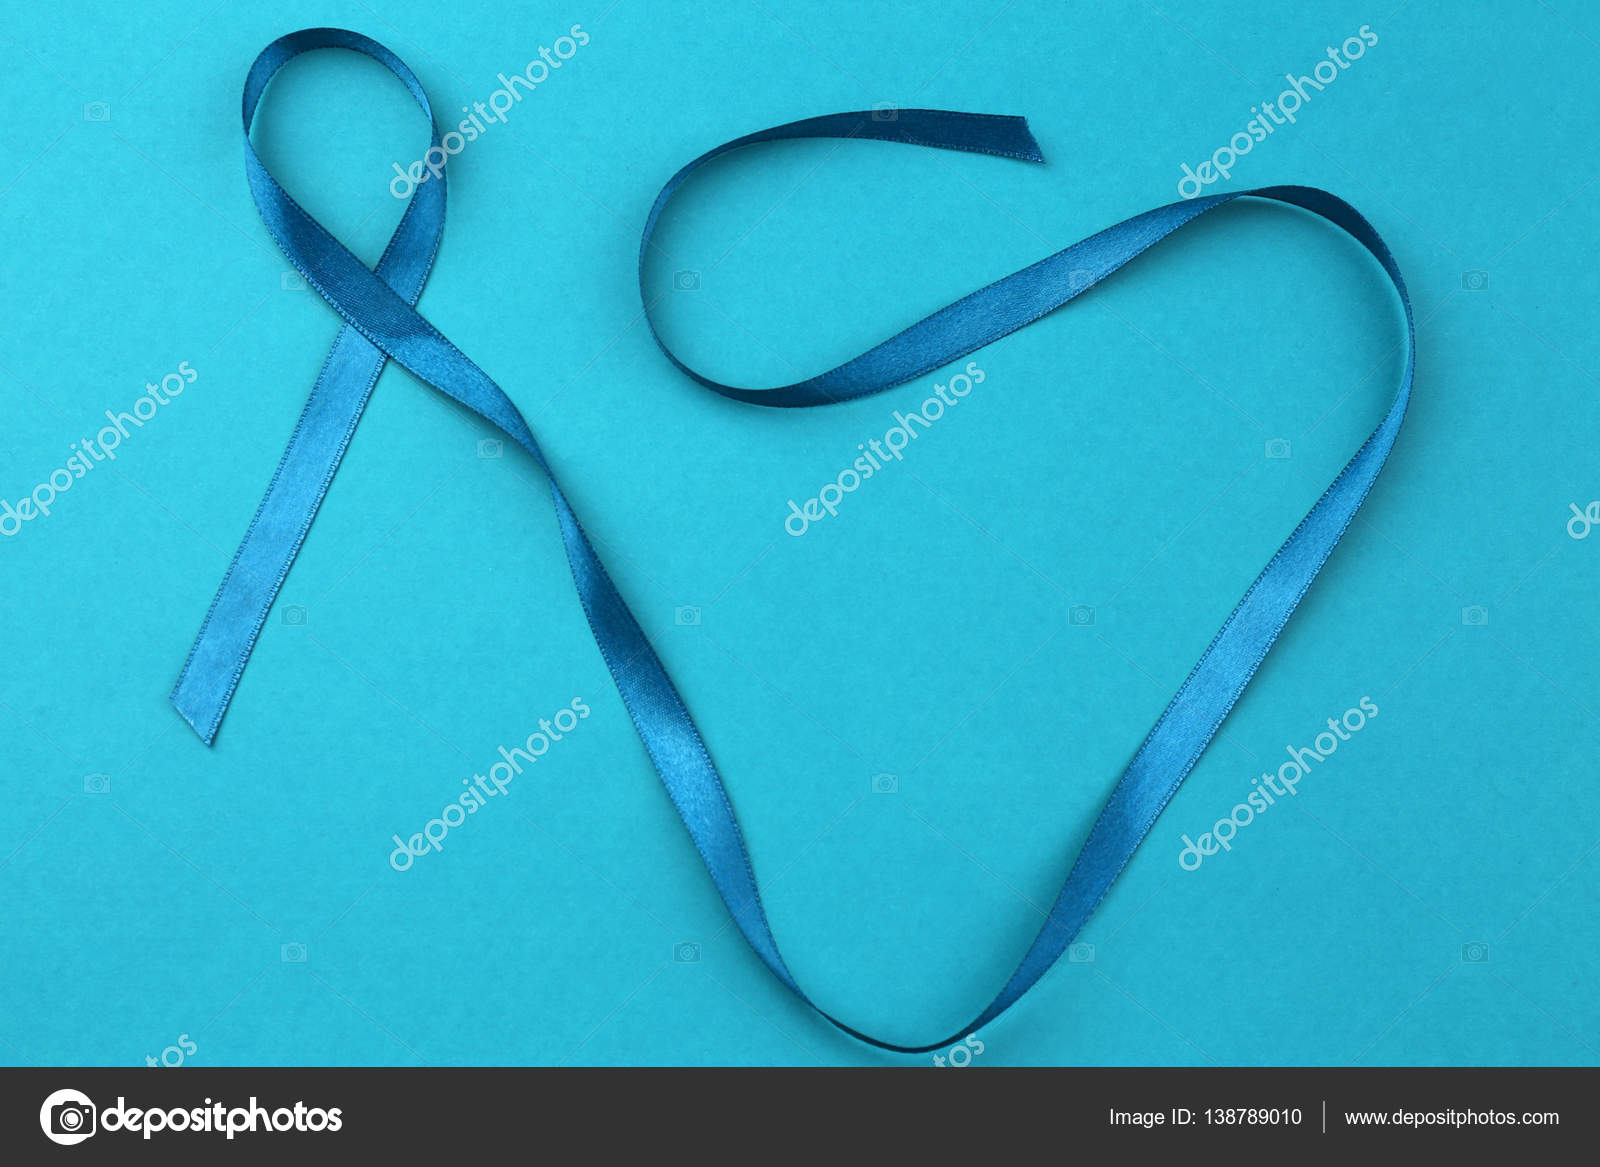 Ovarian cancer and gynecological disorders concept stock photo sea green ribbon on color background ovarian cancer and gynecological disorders concept photo by belchonock biocorpaavc